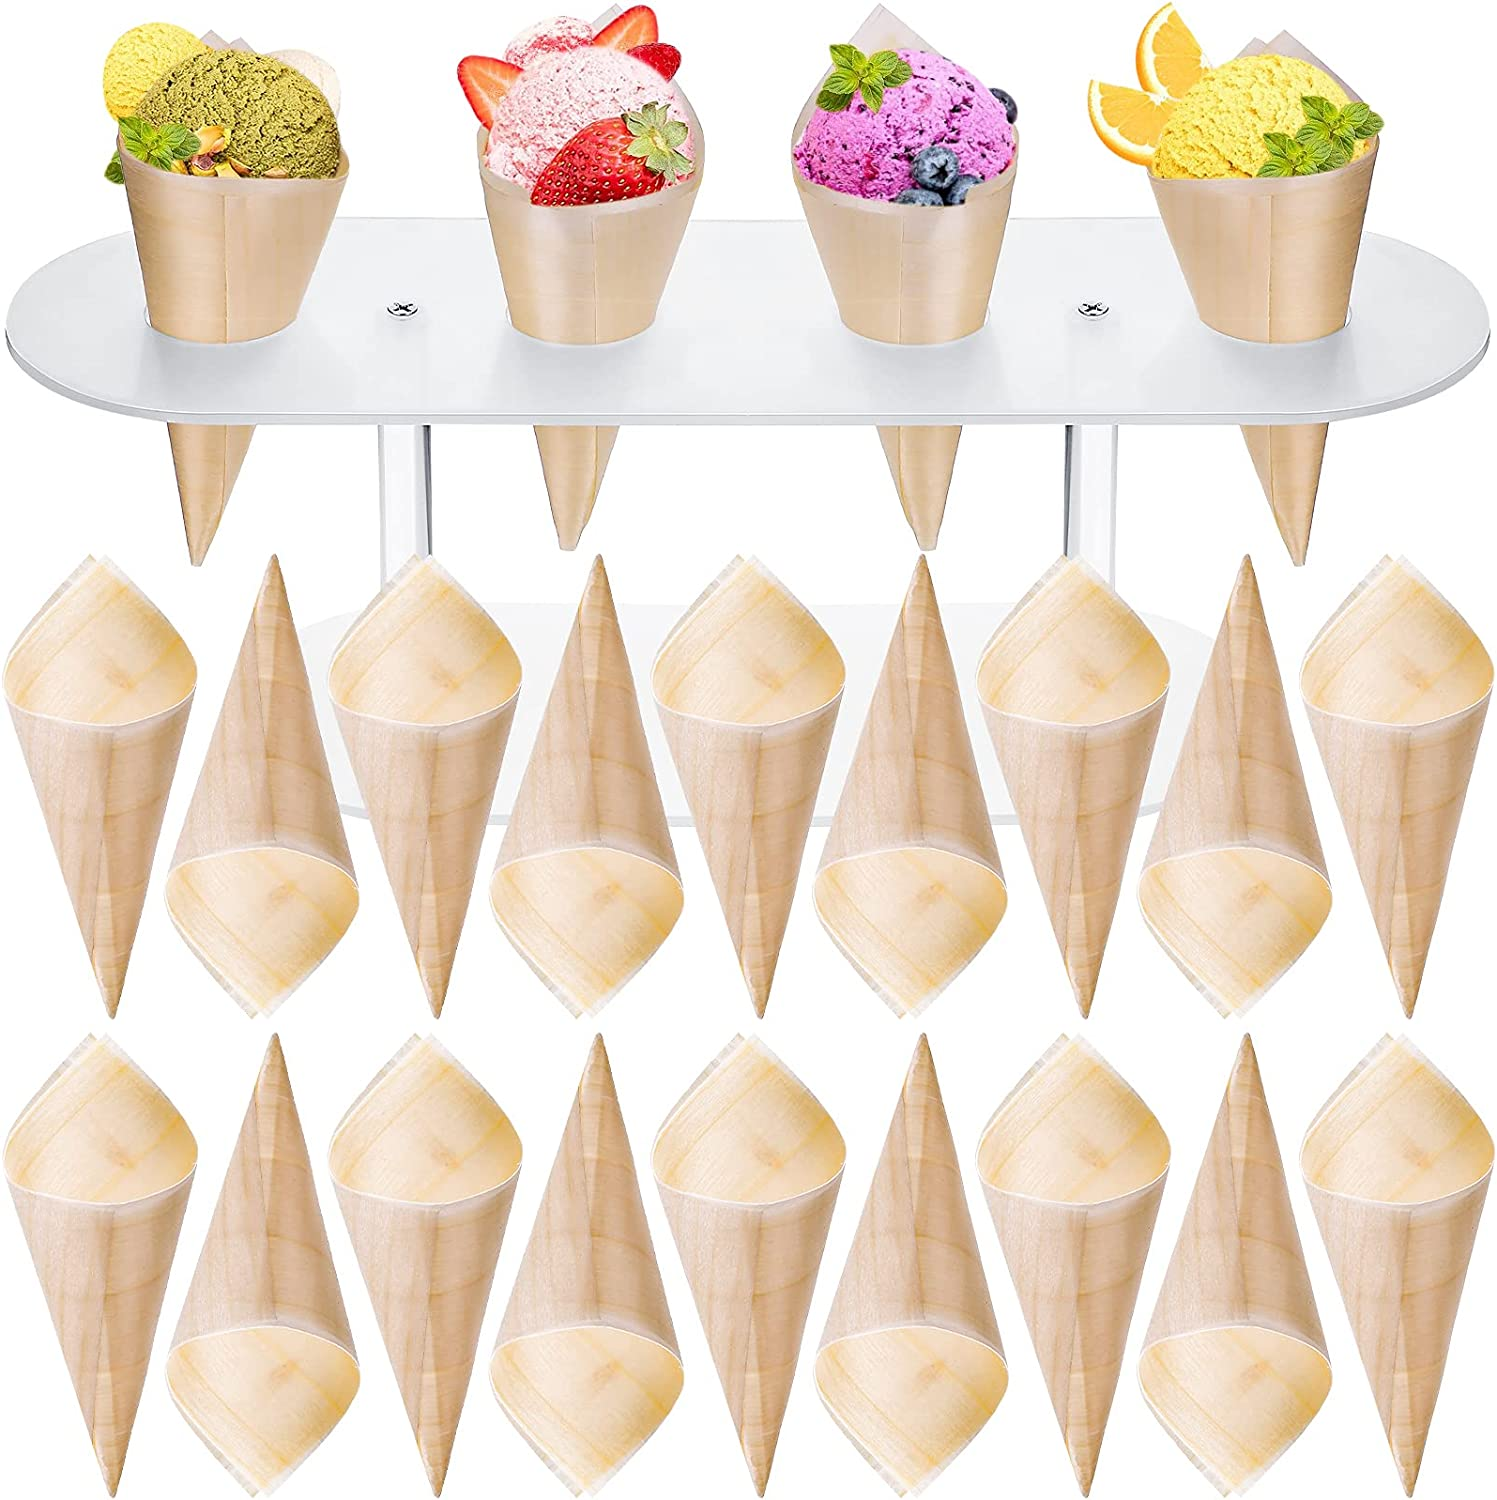 Disposable Wood Cones Serving Cone Food Tasting Cone Wood Cone Appetizer Holder Pinewood Disposable Cones 5 Inch Finger Foods Cones for Appetizers, Catering and Home Use (200)